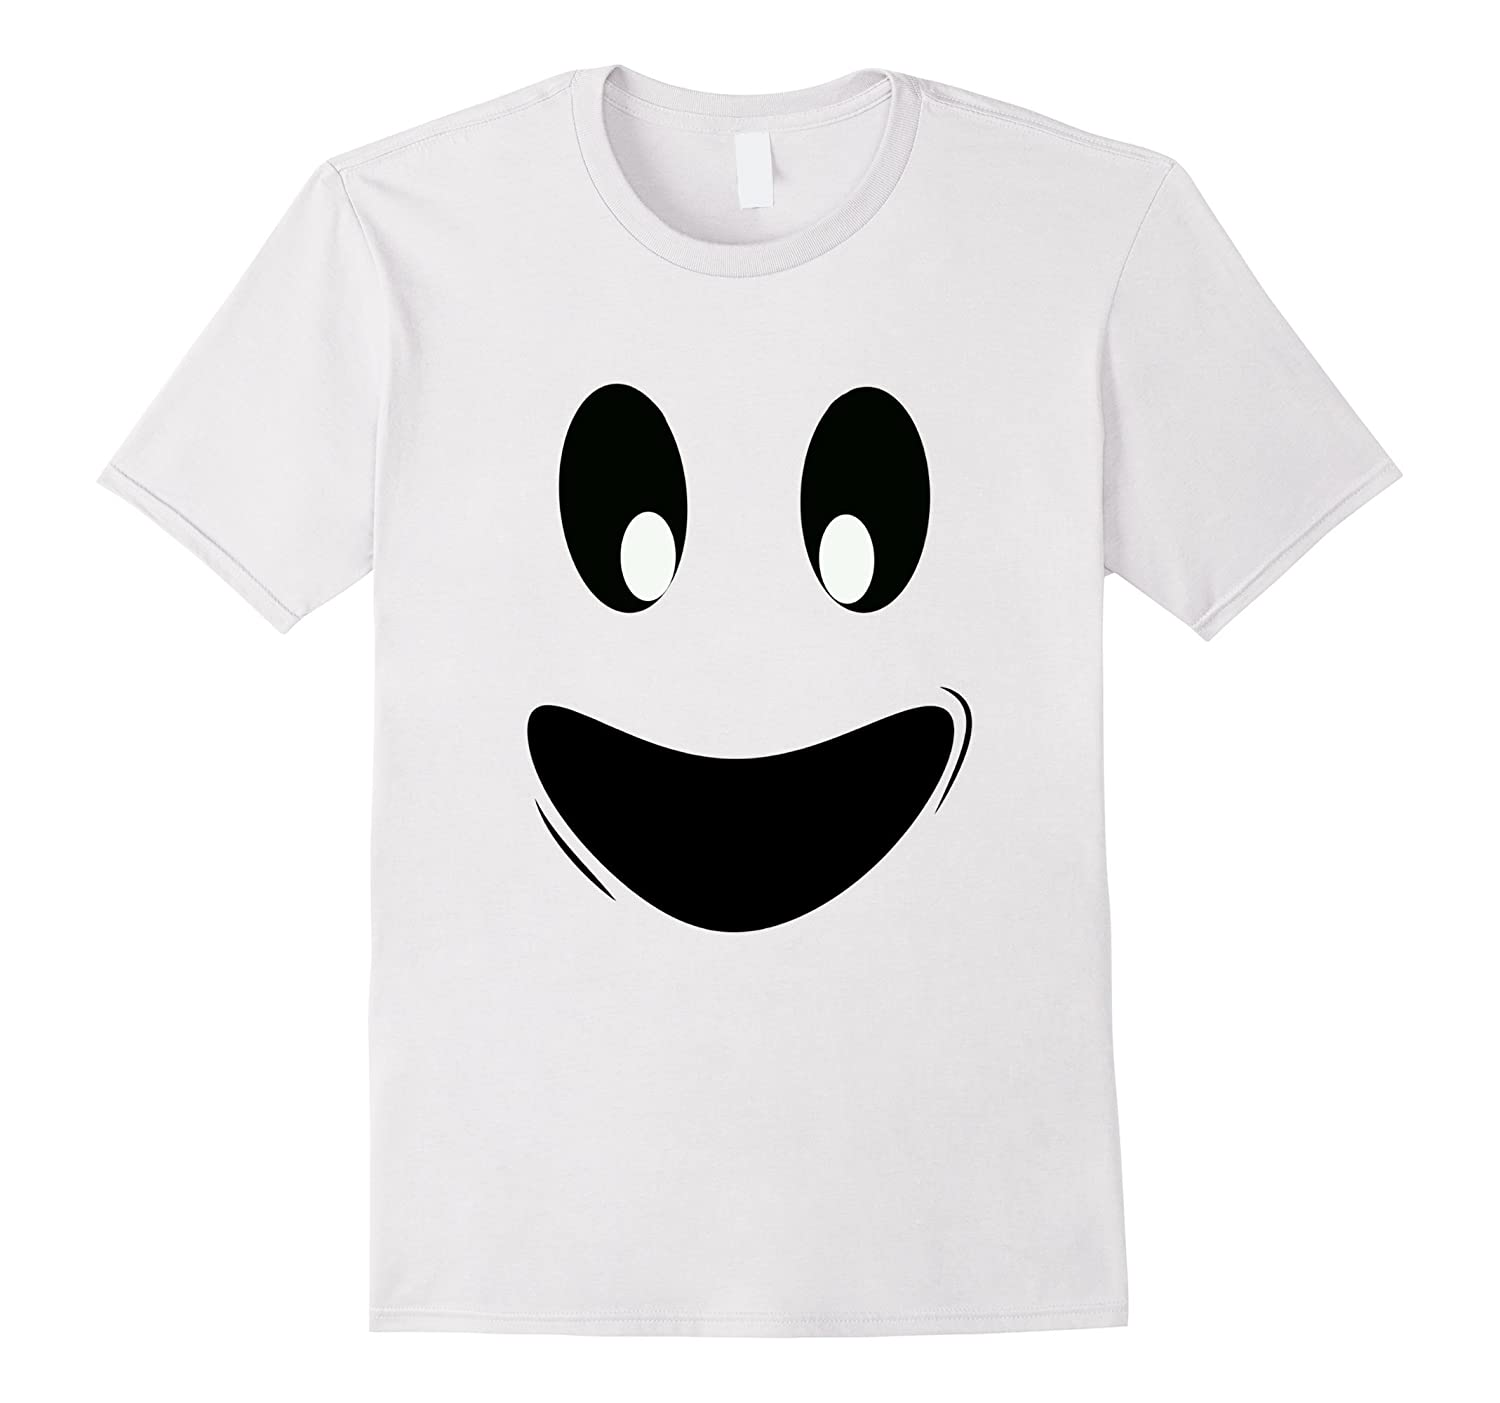 Fun Ghoul Face Ghost Tee Shirt Costume for Kids and Adults-T-Shirt